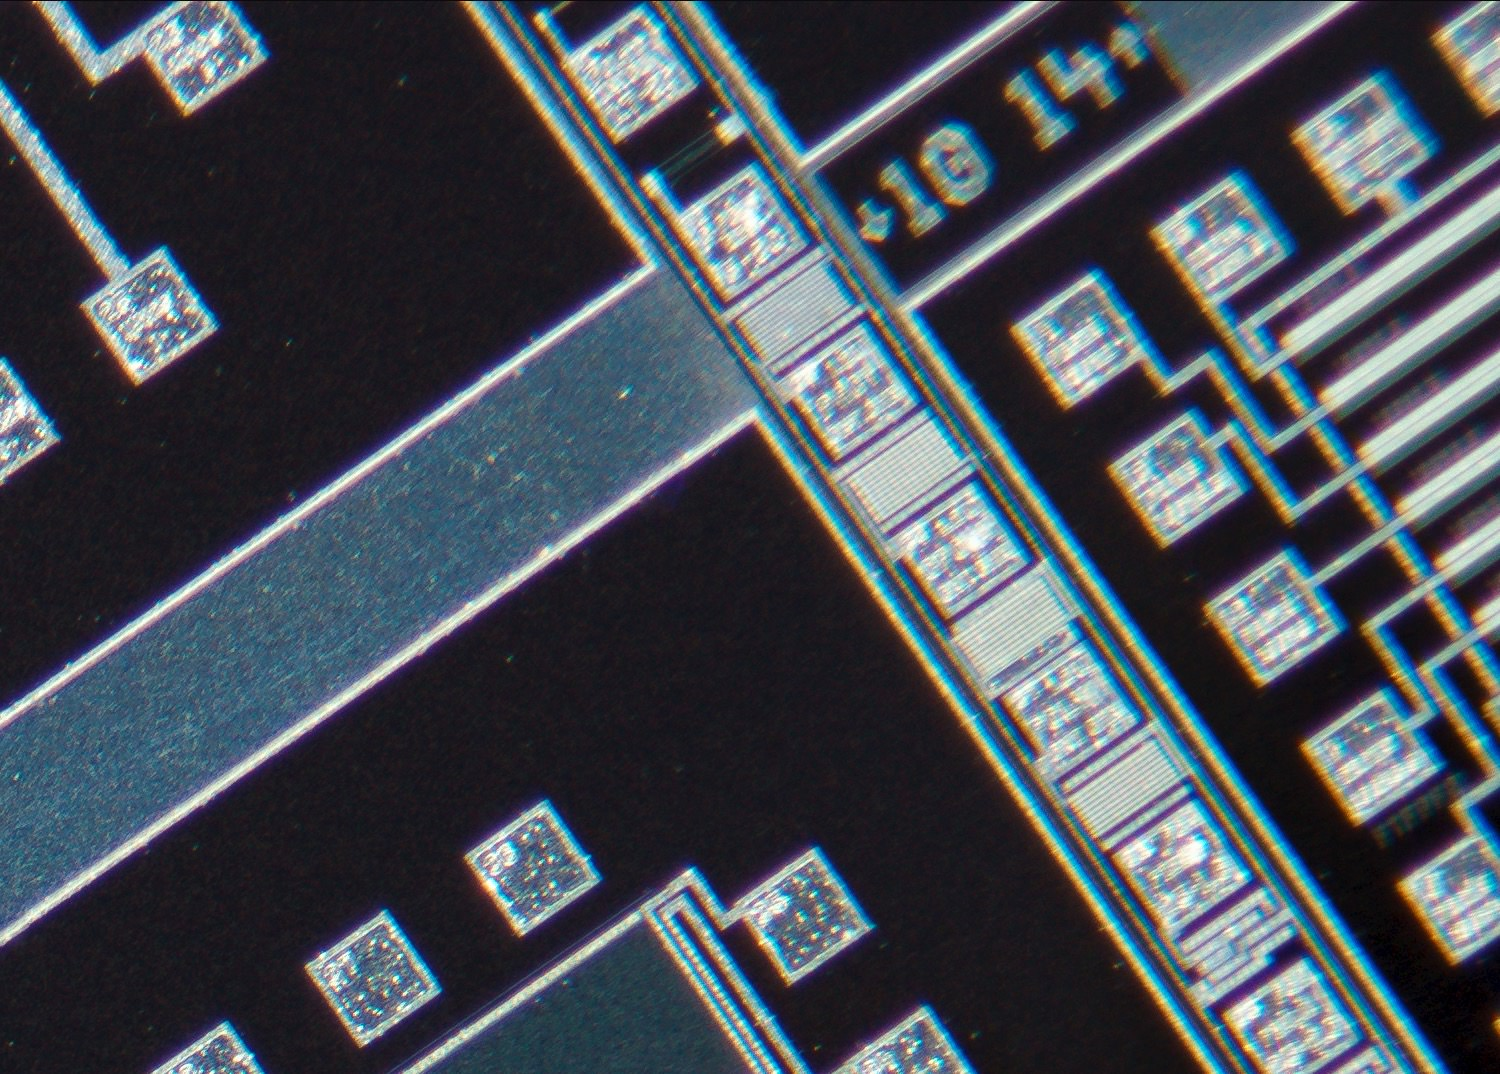 Nikon CF N Plan Achromat 4X/0.13 Microscope Objective 100% actual pixel view corner crop. Clicking on an image will open a larger version.